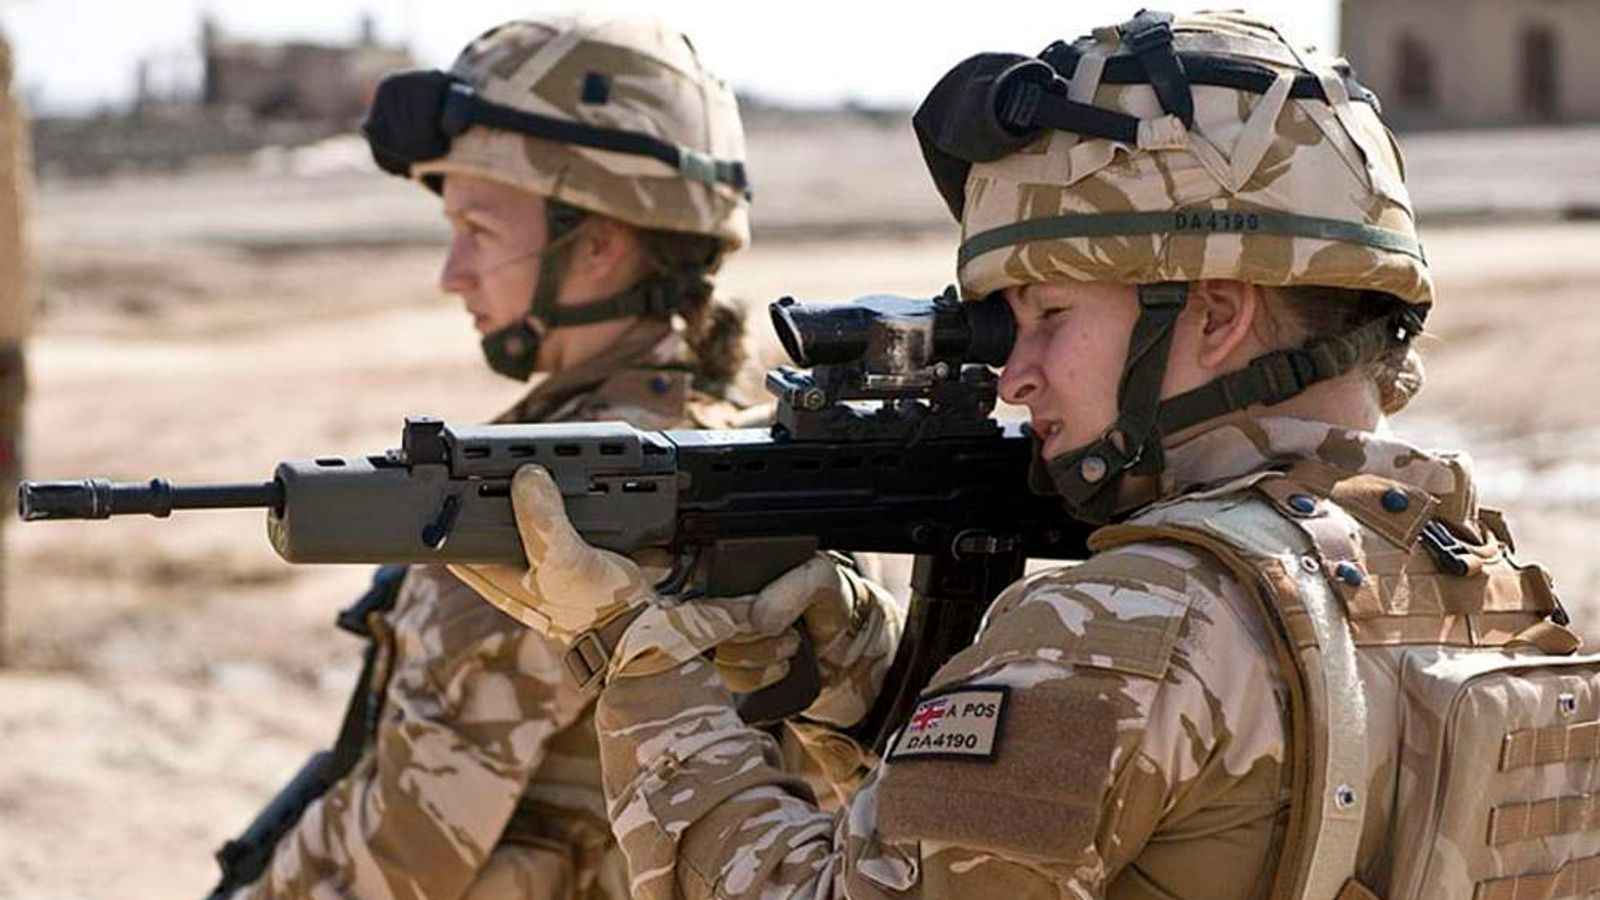 British Female Soldiers On Patrol In Afghanistan